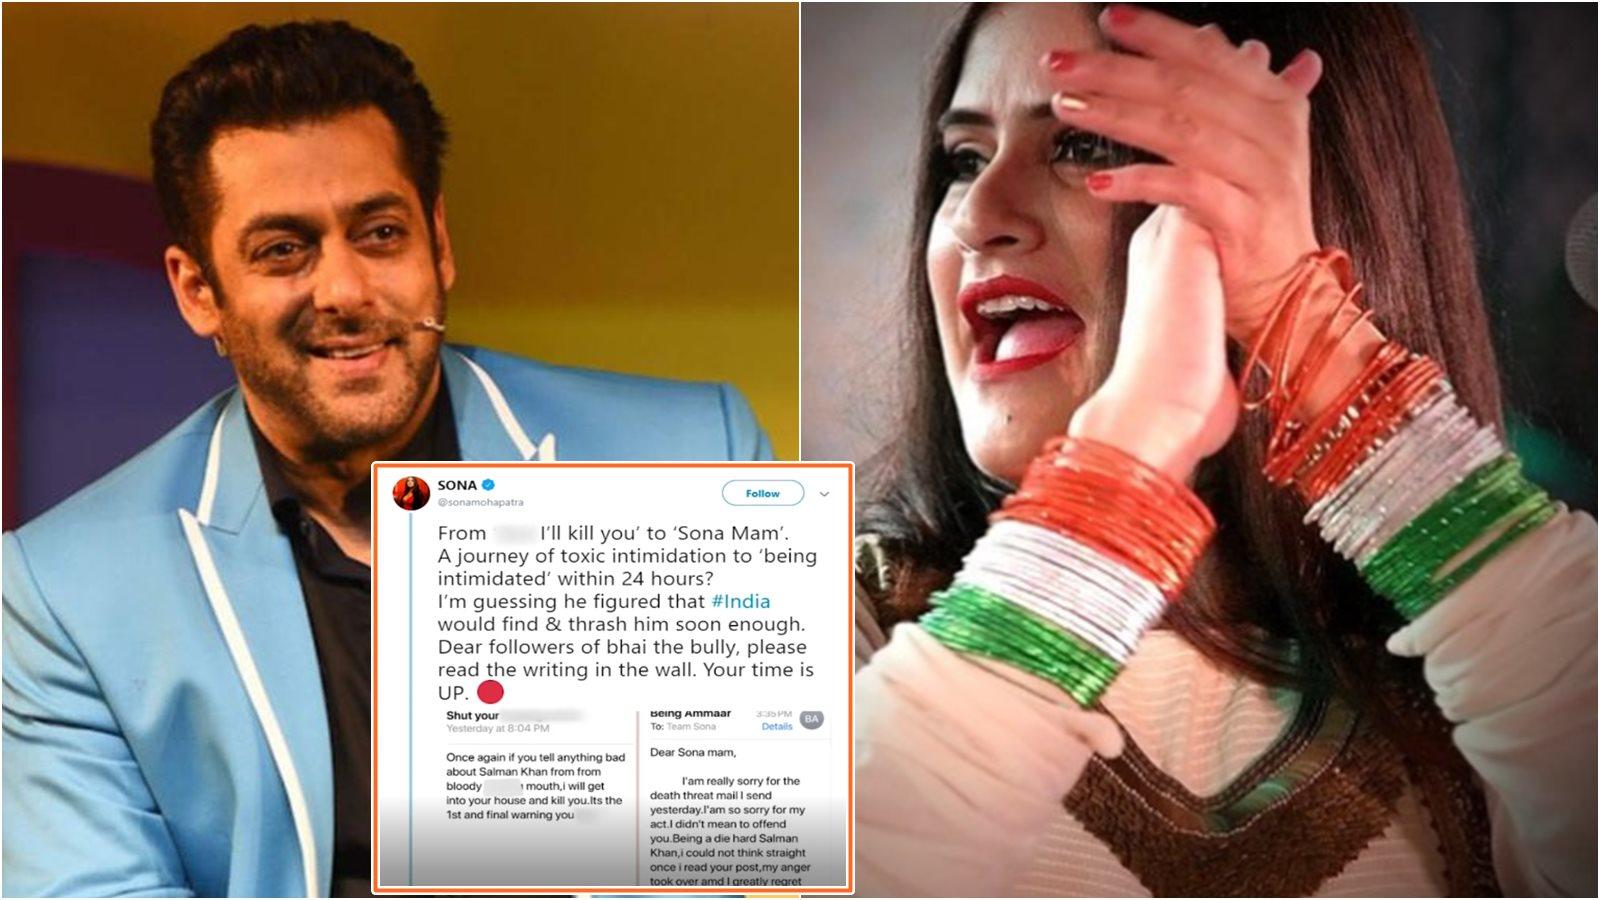 From I'll kill you to 'Sona Mam': Sona Mohapatra shares apology by Salman Khan fan who sent her death threat